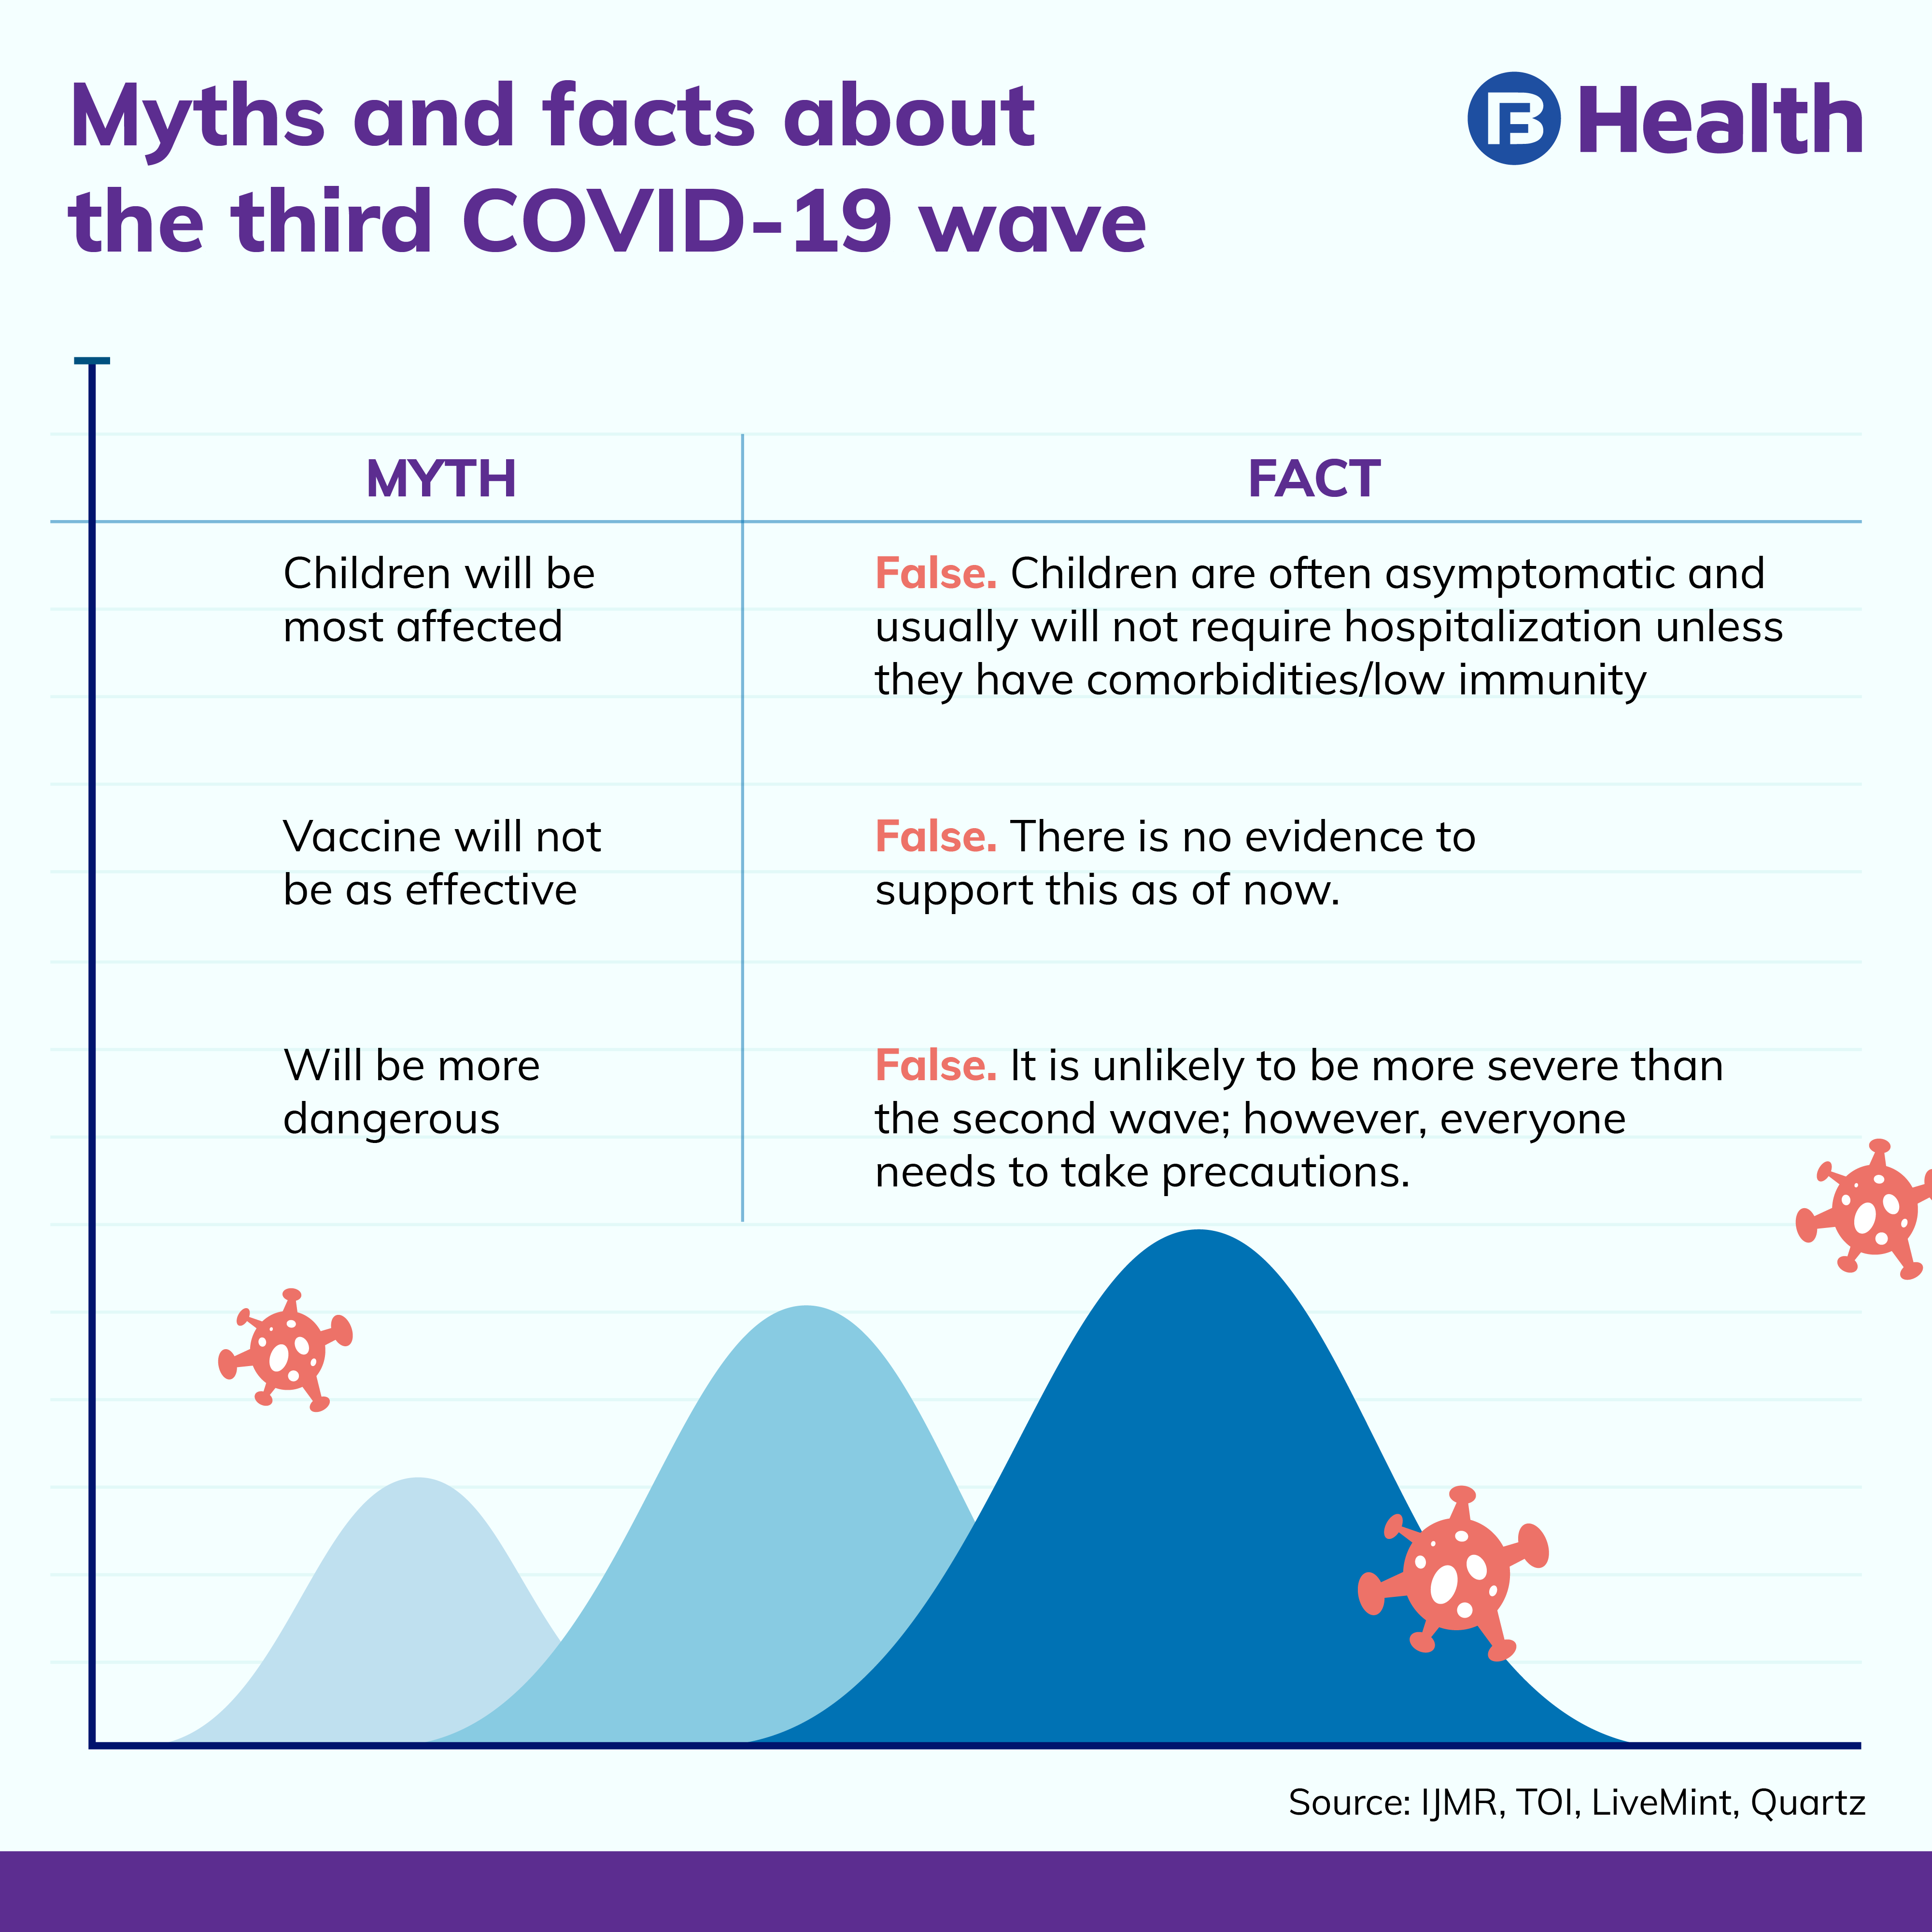 Myth and facts about 3rd COVID-19 wave_Bajaj Finserv Health